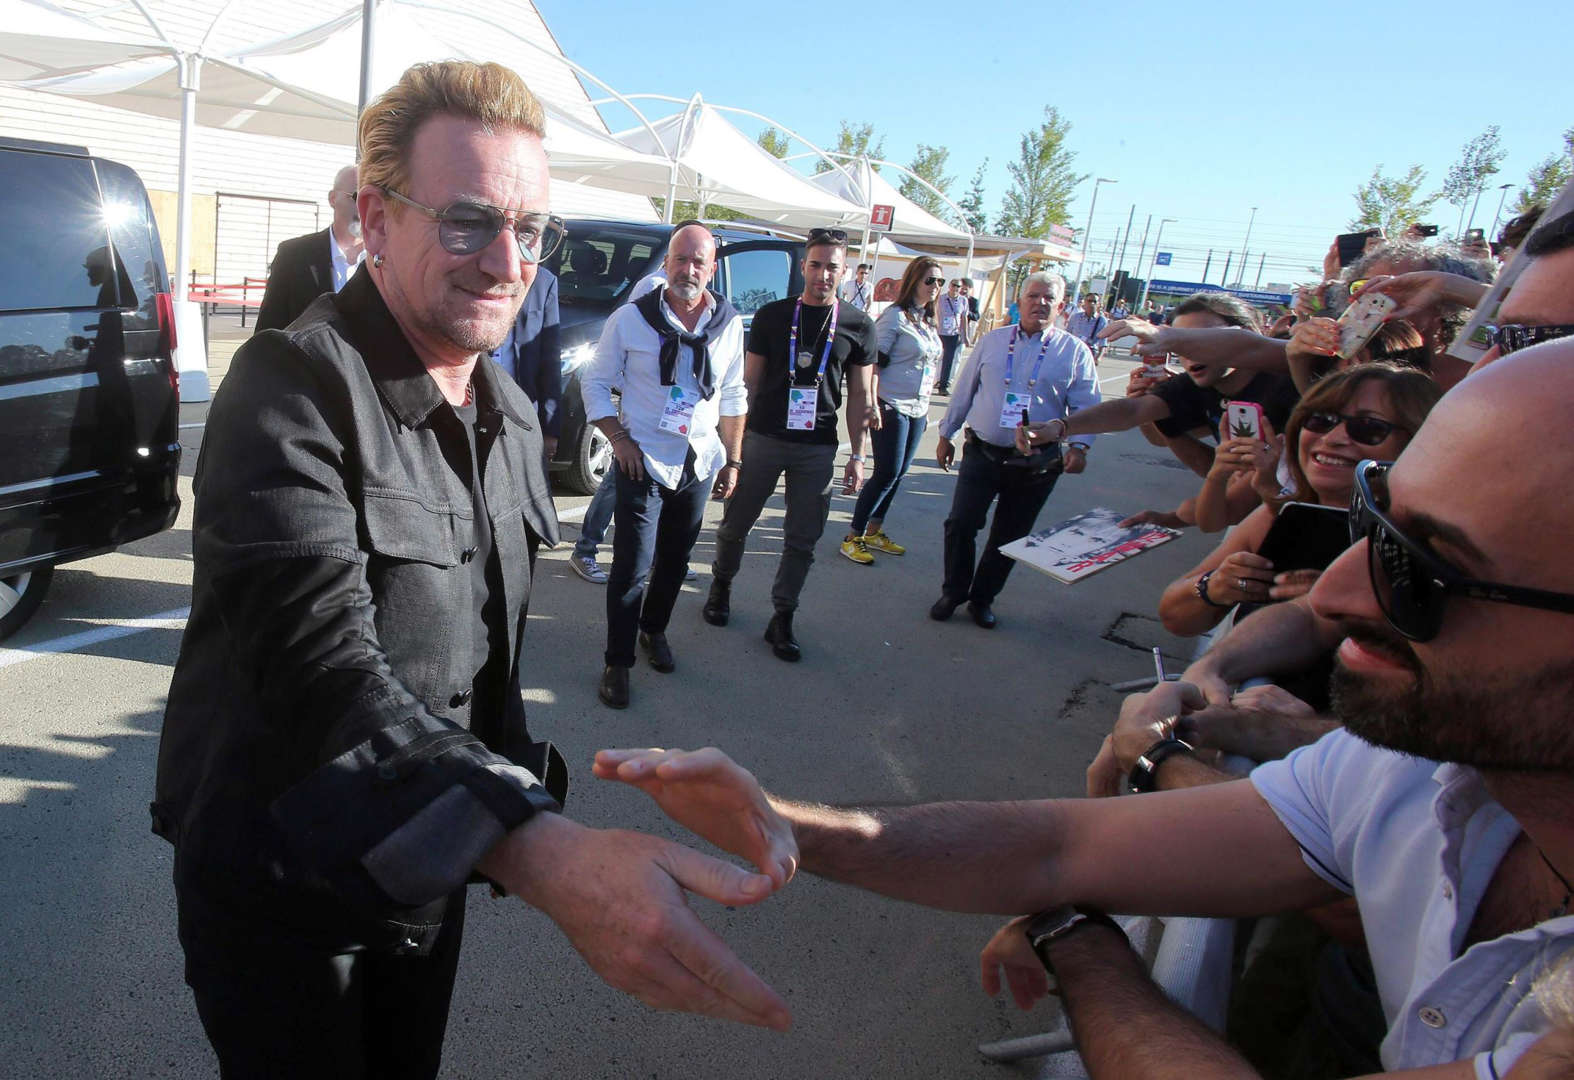 . Milan (Italy), 06/09/2015.- Irish leader of U2 Bono Vox during his visit at Expo 2015 in Milan, 6 September 2015. This is the second time Milan hosts the Expo, the first Milan International Exposition took place in 1906. The event's 2015 theme is 'Feeding the Planet, Energy for Life'.ha (Italia) EFE/EPA/MATTEO BAZZI